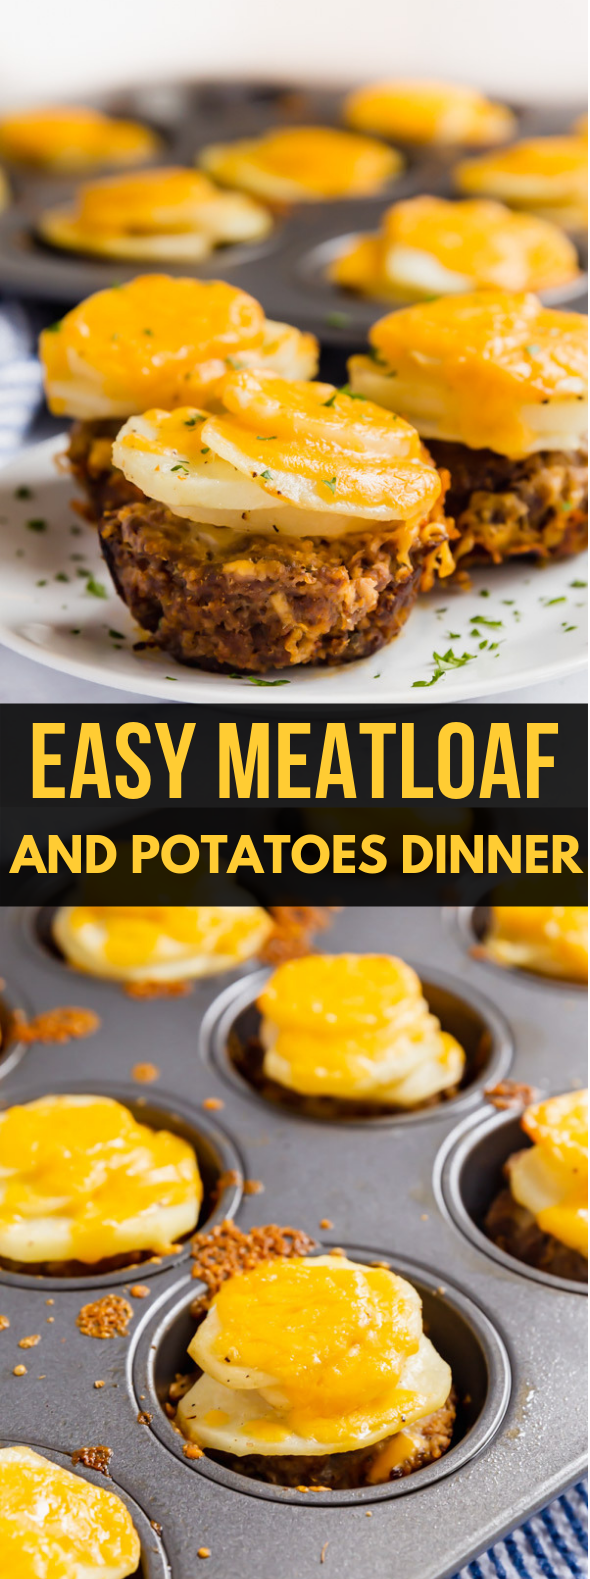 Easy Meatloaf and Potatoes Dinner #dinnerontable #easydinner